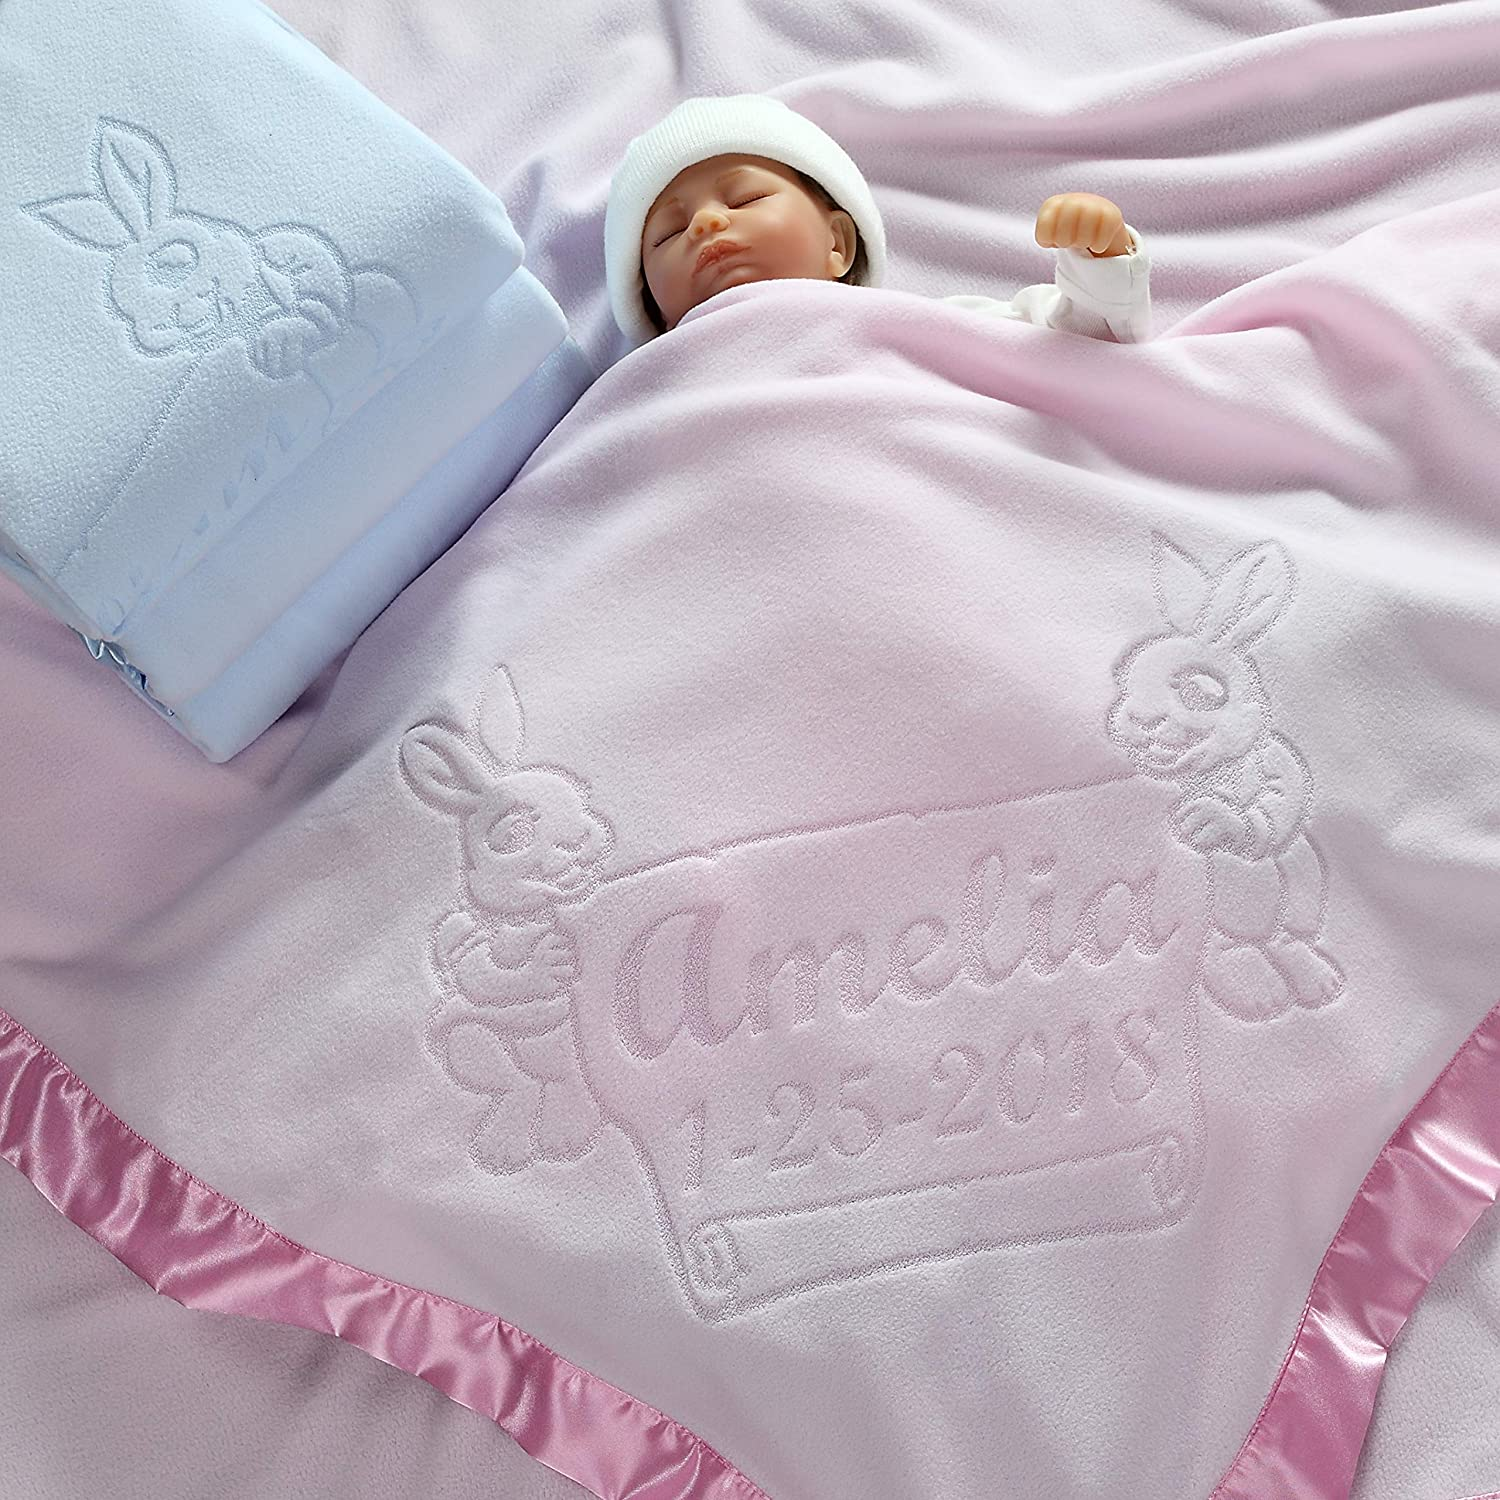 PERSONALISED BABY BLANKET BIRTH DETAILS EMBROIDERED NEW BABY BOY//GIRL GIFT